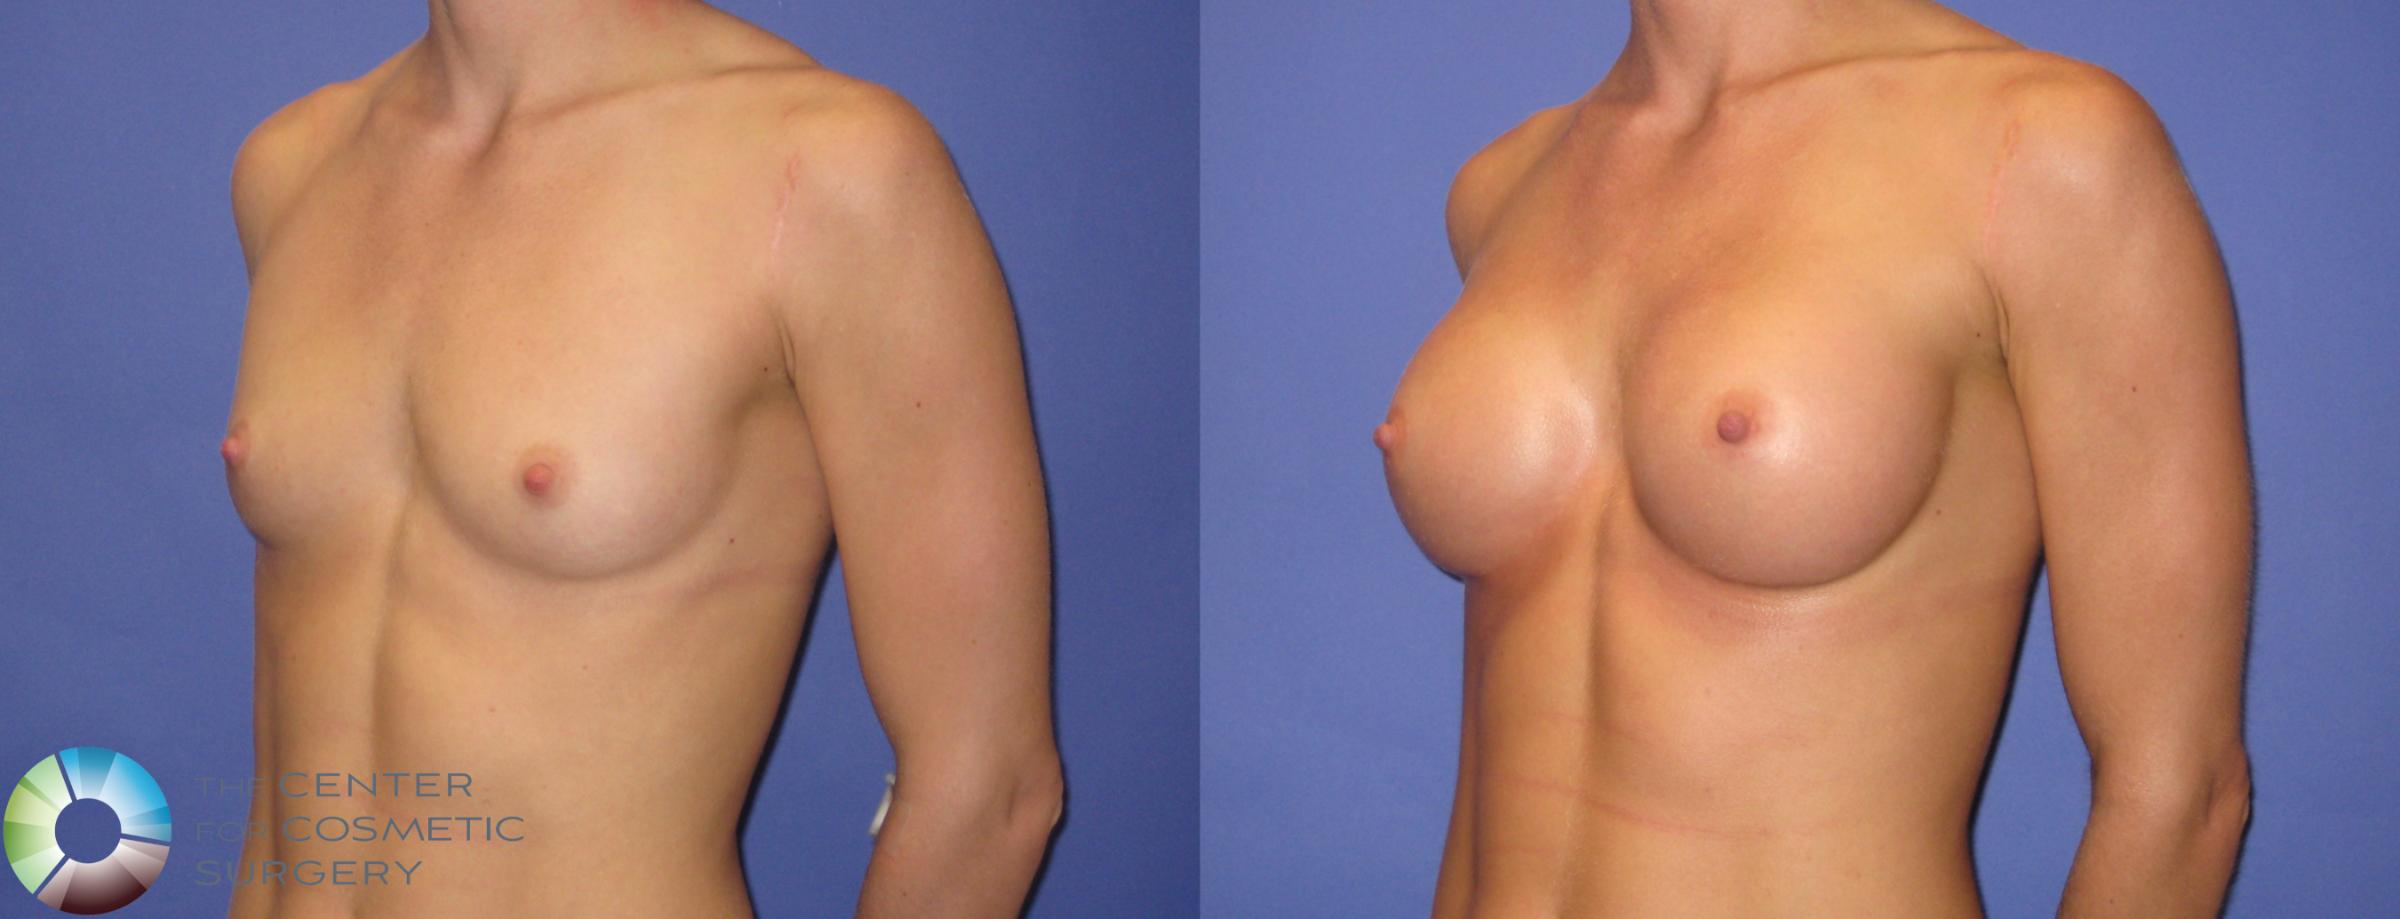 Breast Augmentation Case 307 Before & After View #2 | Golden, CO | The Center for Cosmetic Surgery